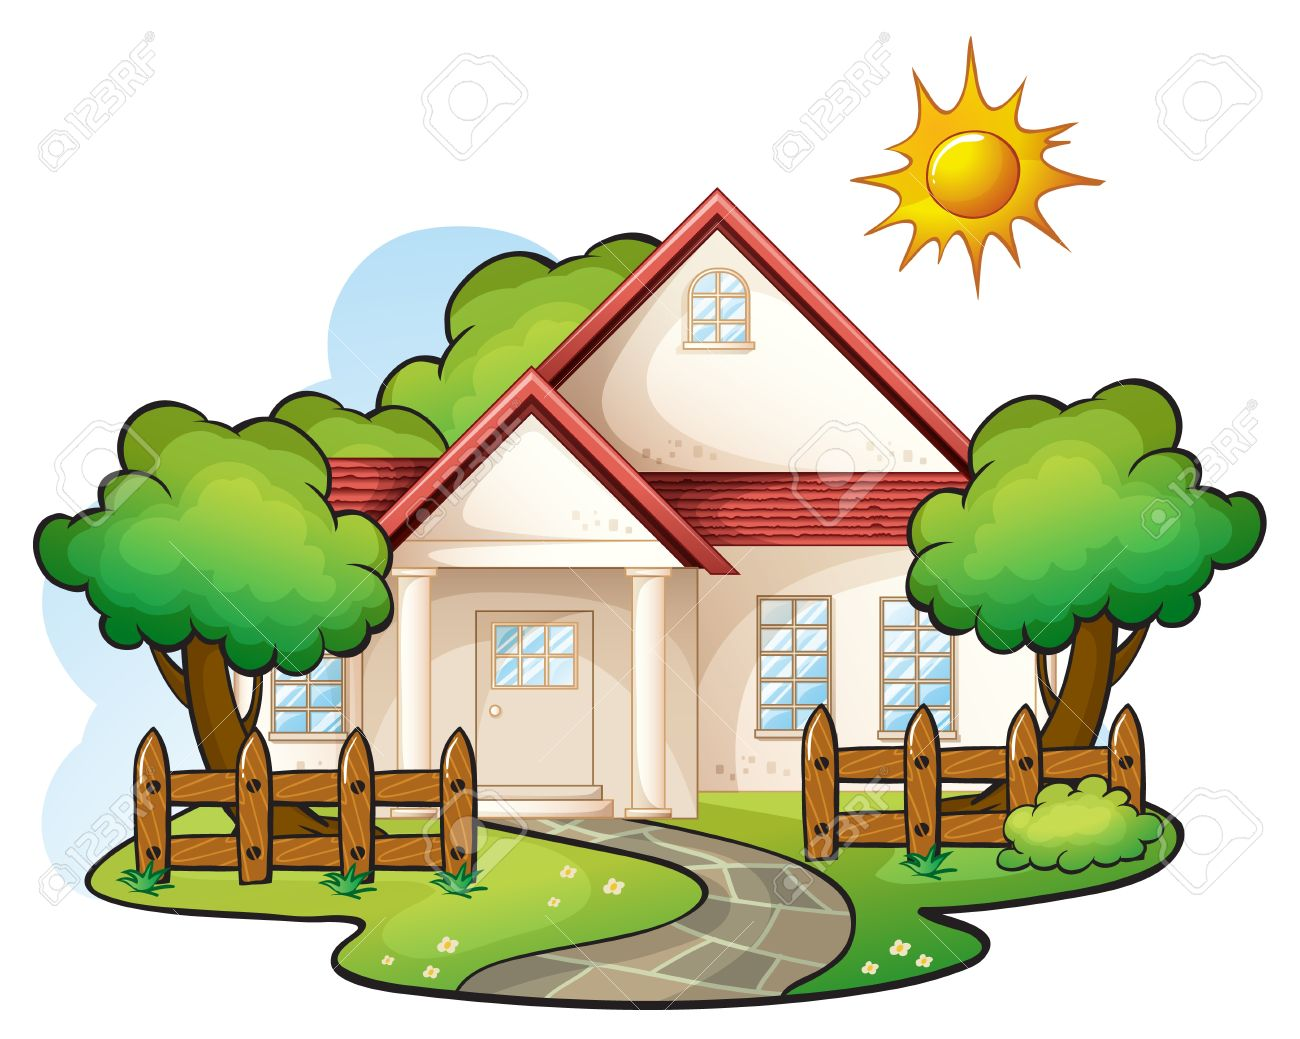 Images free download best. Cottage clipart pretty house